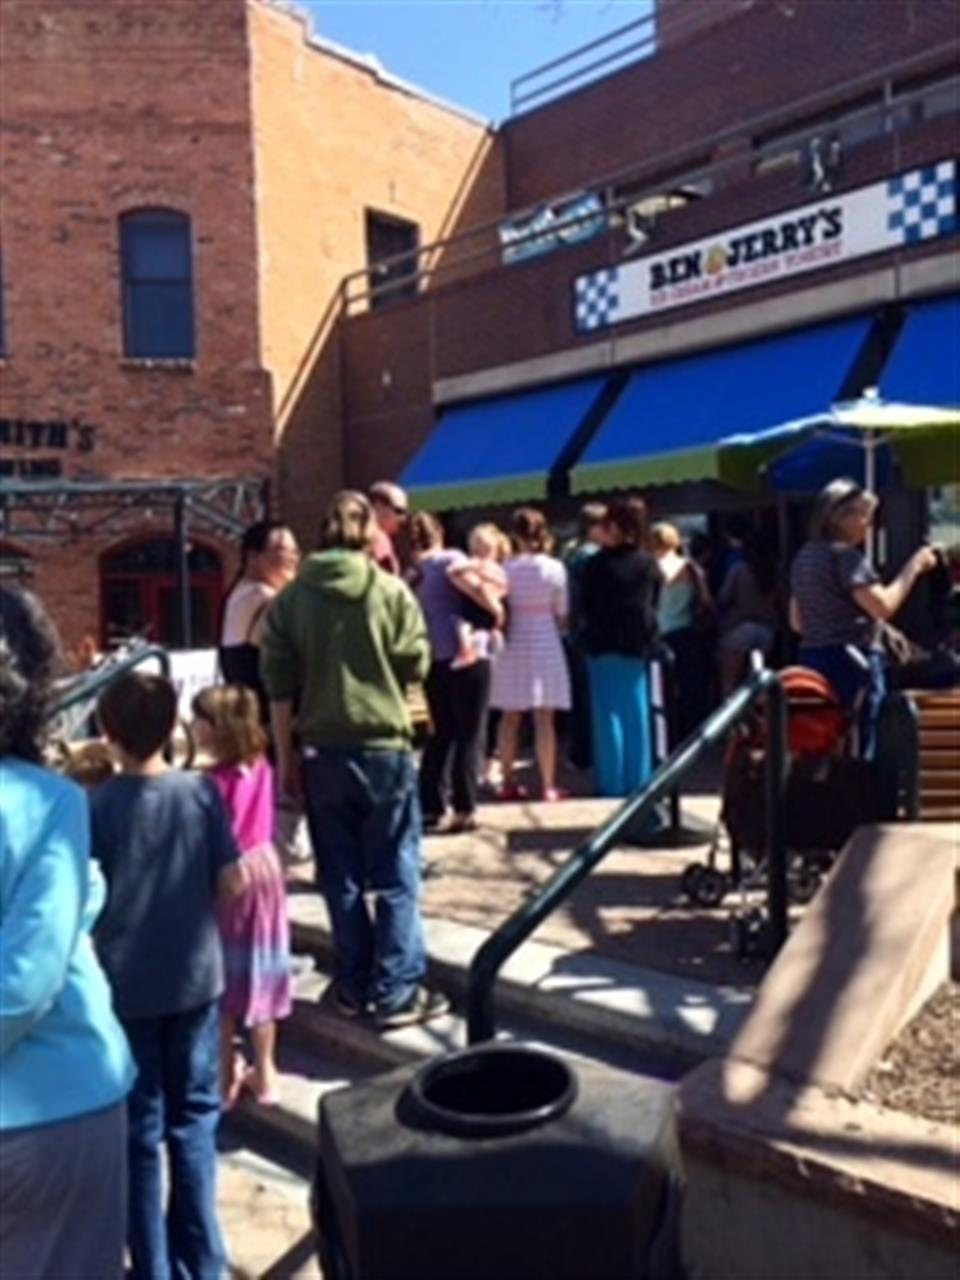 Hundreds gather for Free Ice Cream Day at Ben & Jerry's!